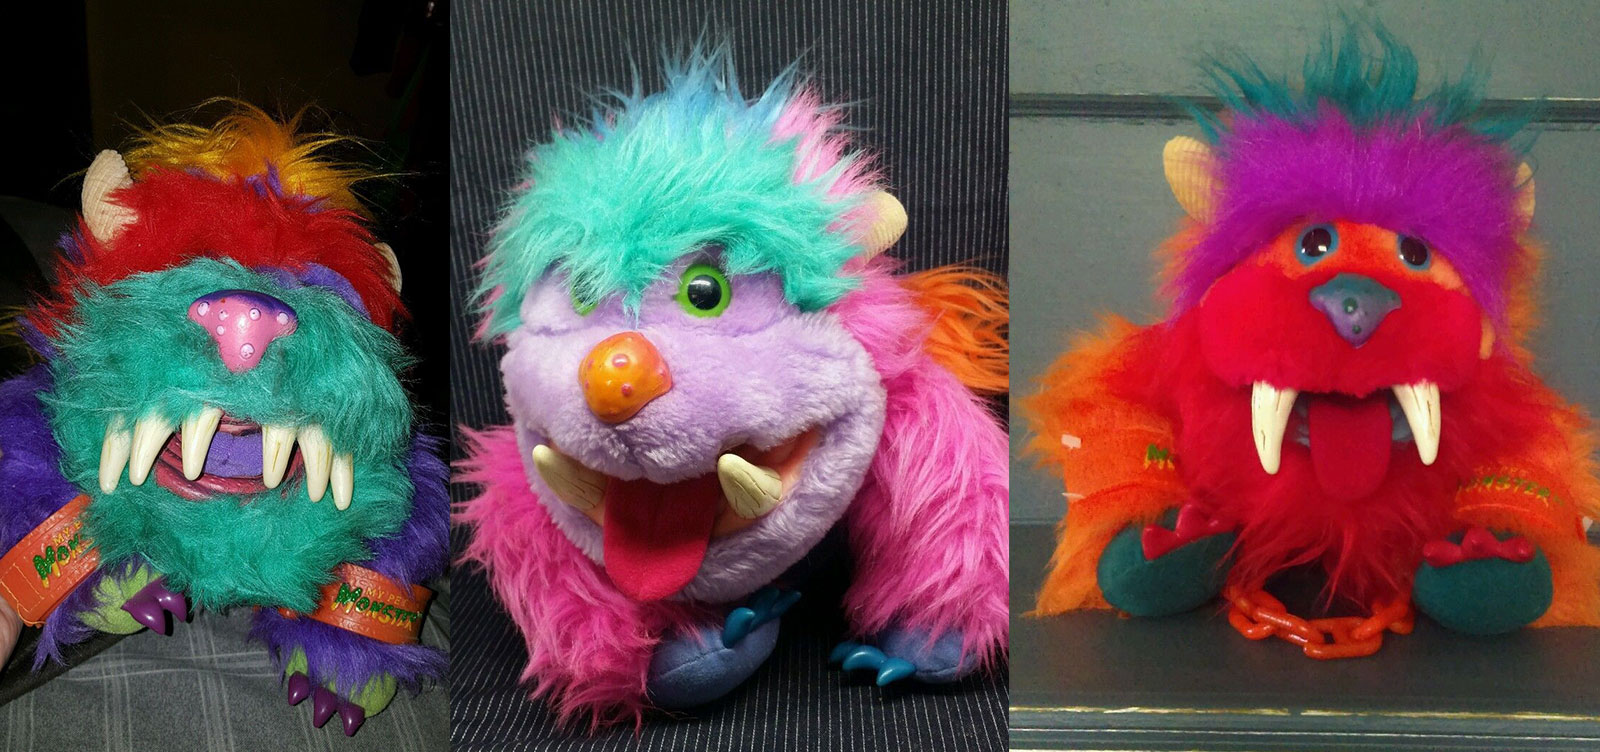 Remembering My Pet Monster Horror Land